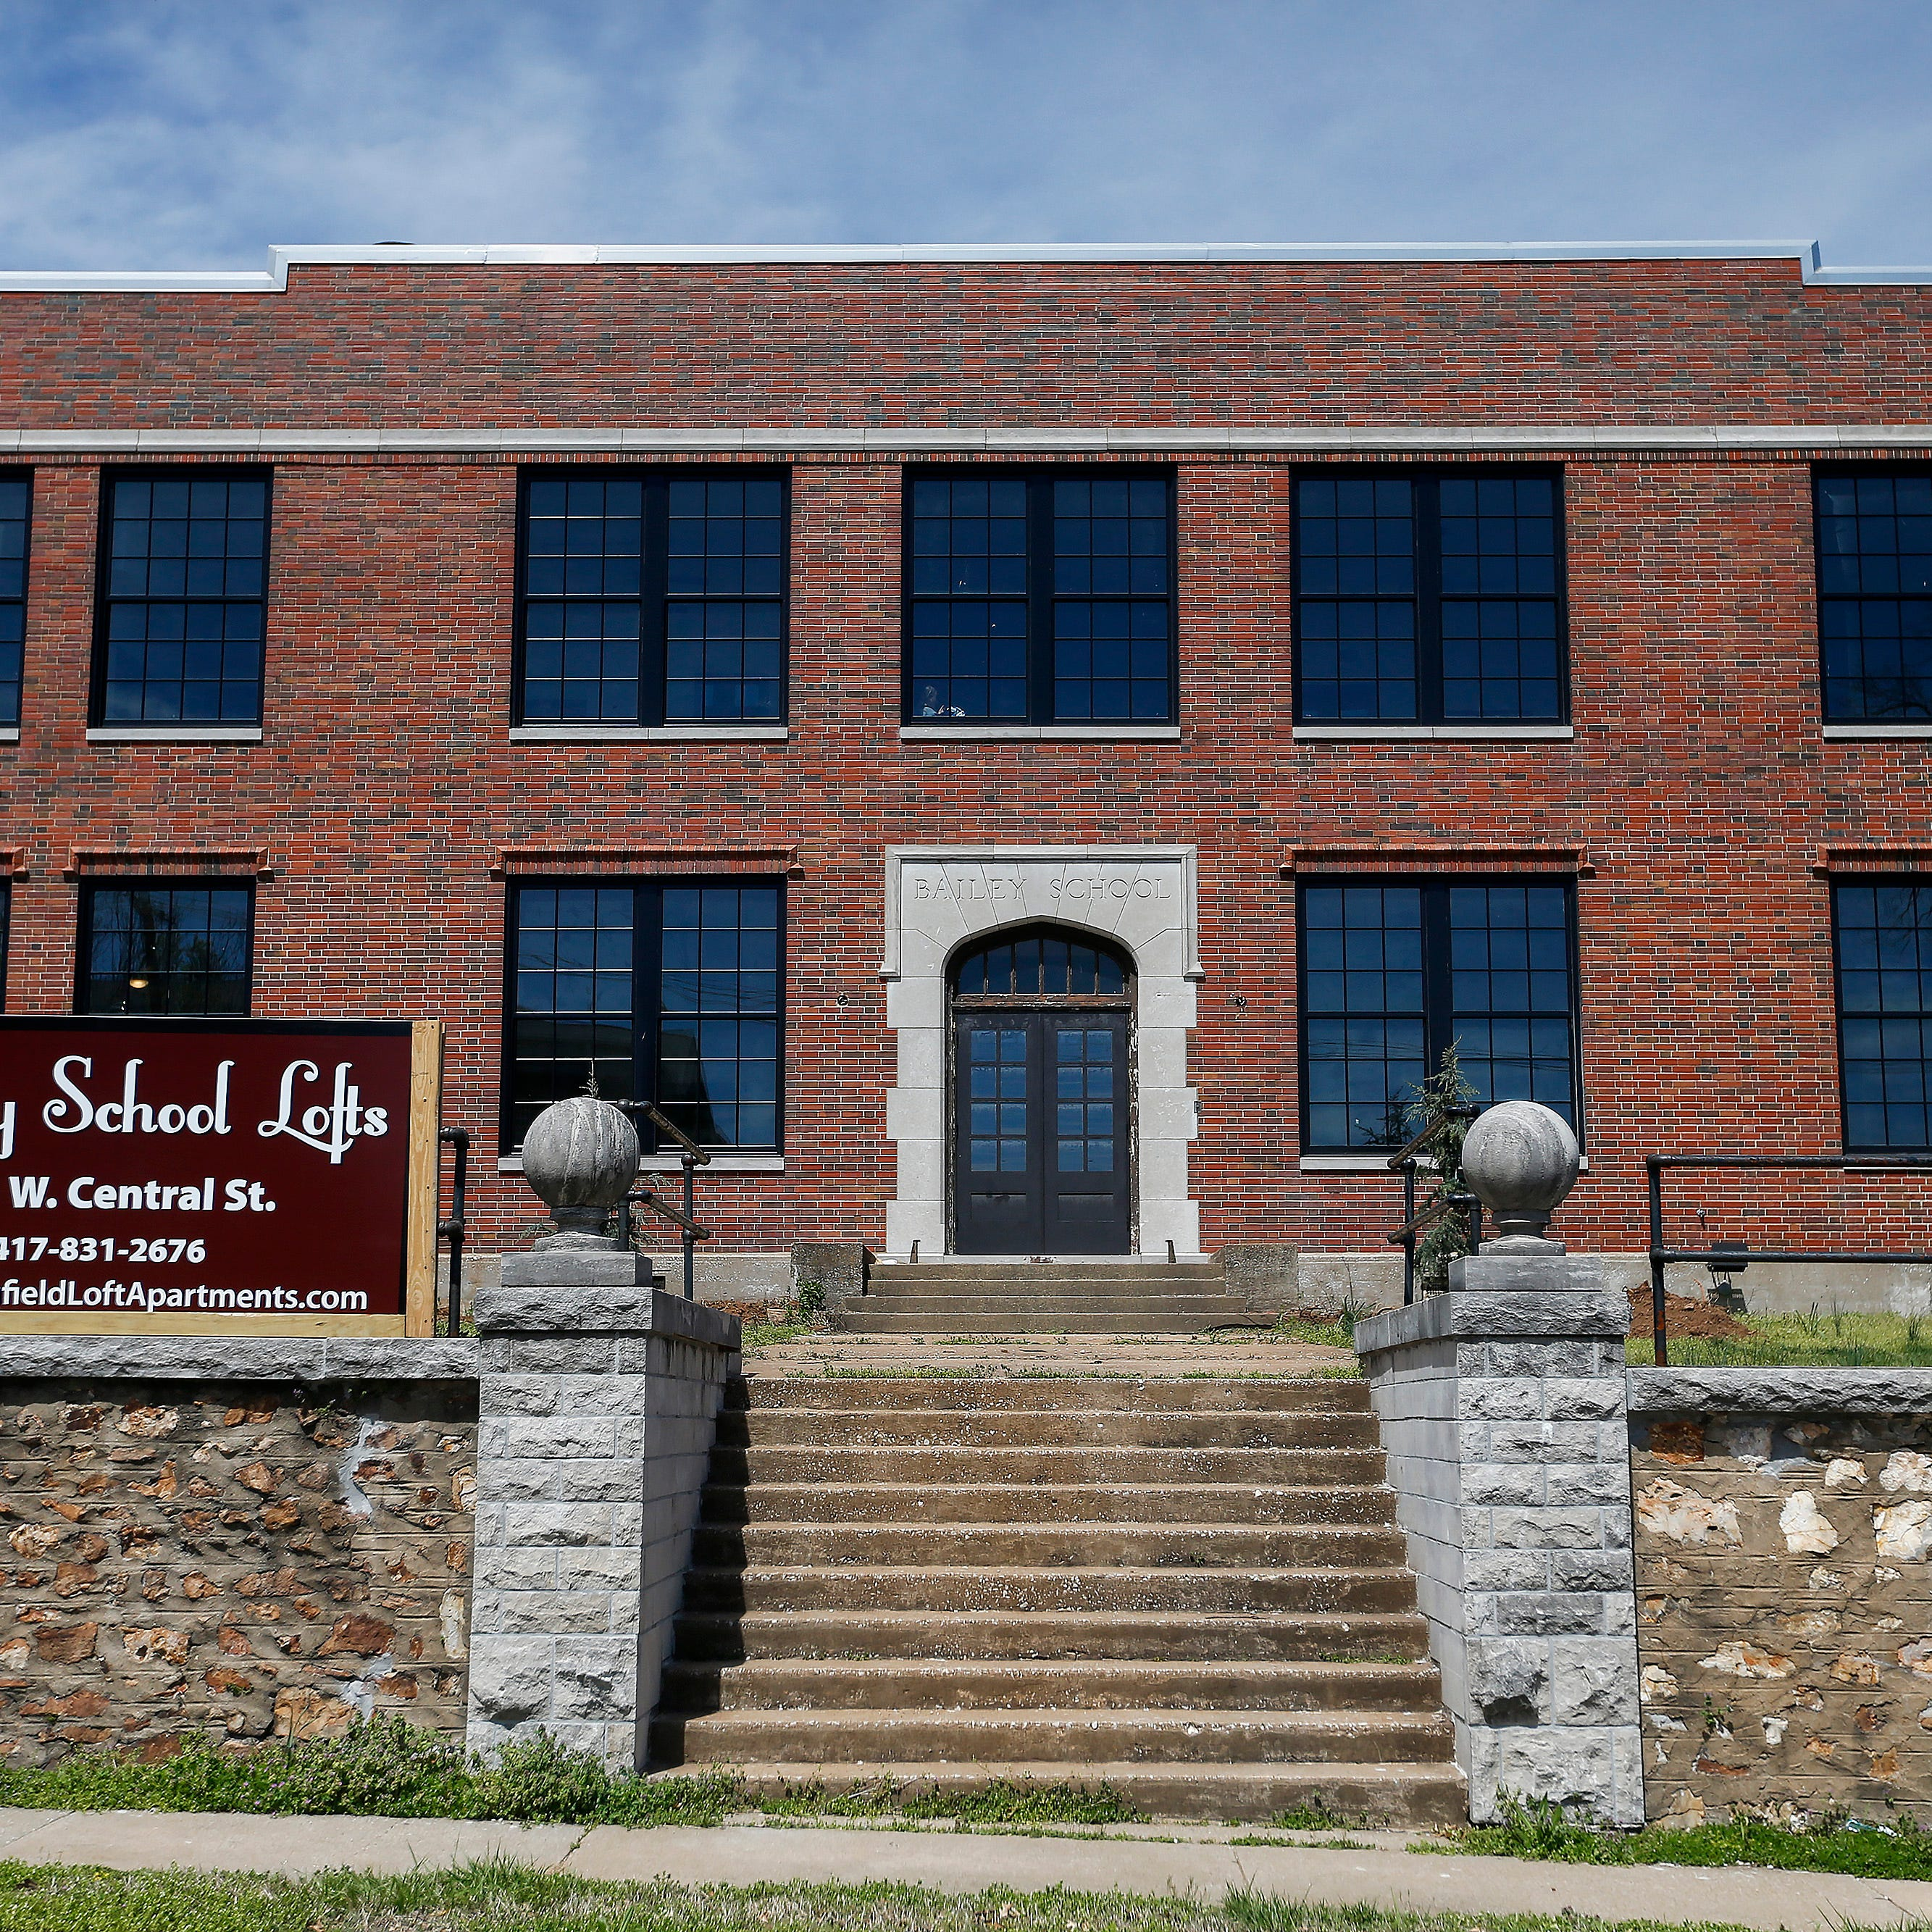 Springfield's historic Bailey school, once shuttered, to reopen as lofts